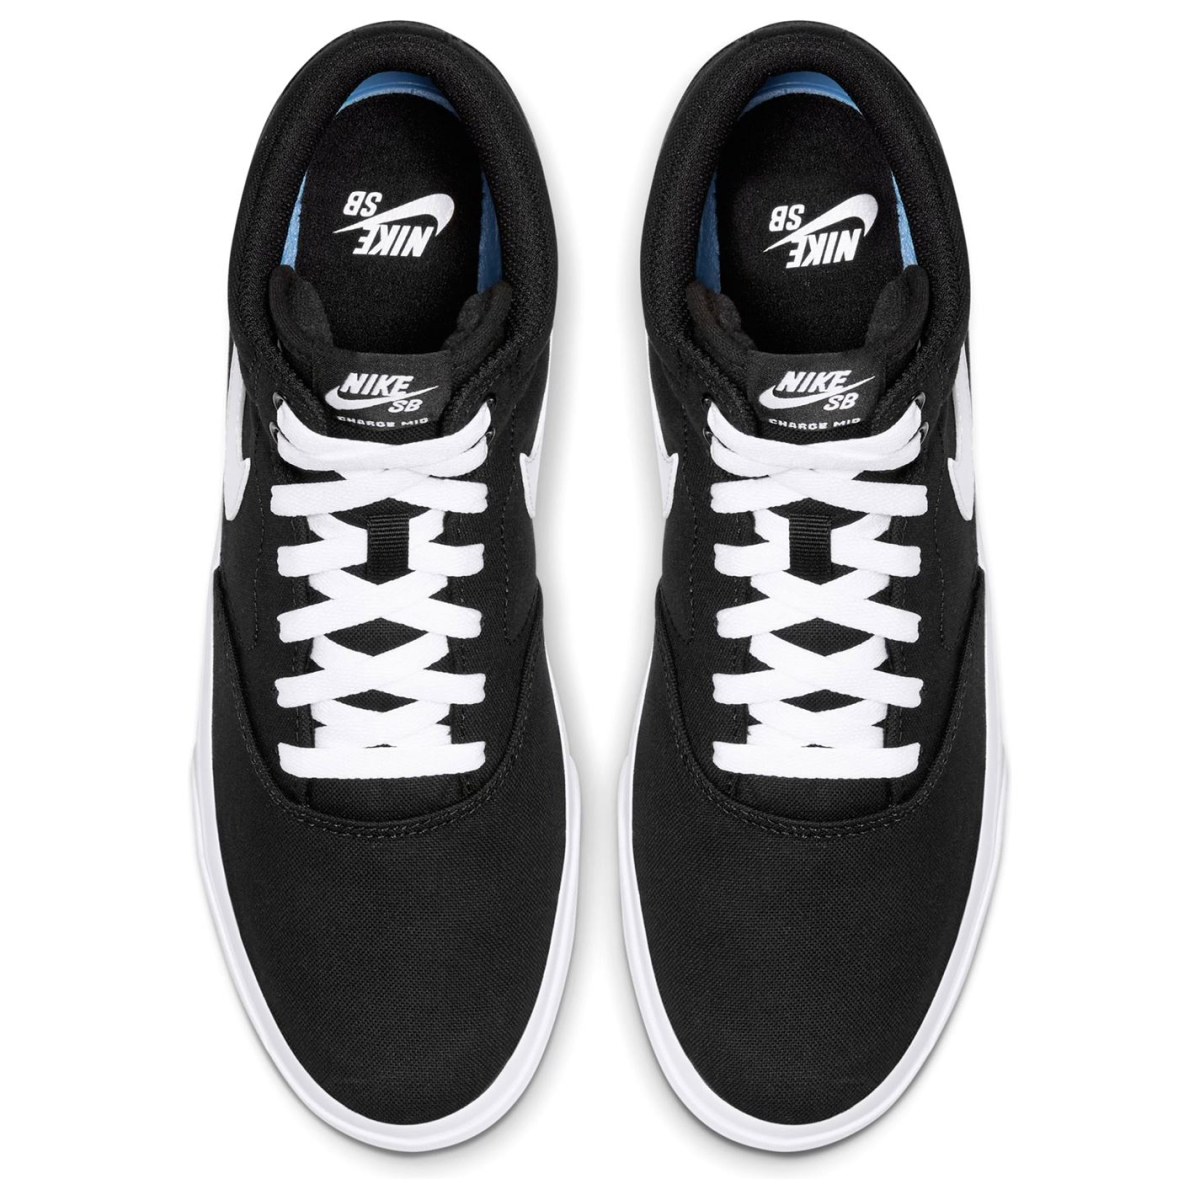 Nike-SB-Lot-Mid-Hommes-Skate-Chaussures-Skater-Chaussures-Chaussures-De-Sport-Toile-2017 miniature 5